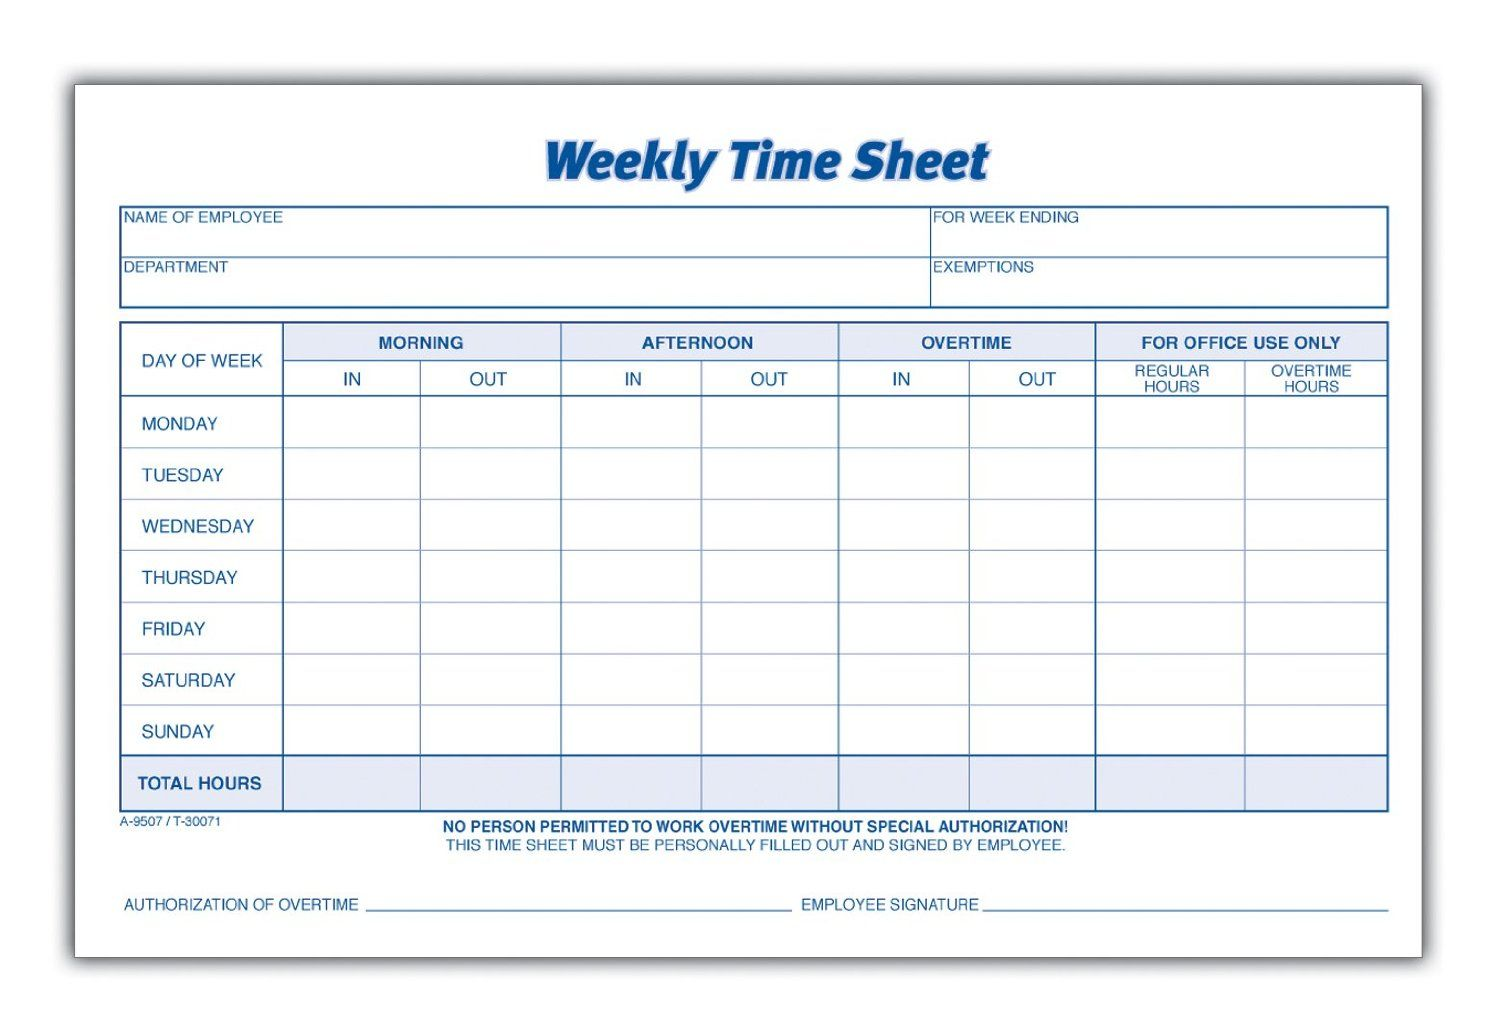 Weekly Employee Time Sheet  Good To Know    Business